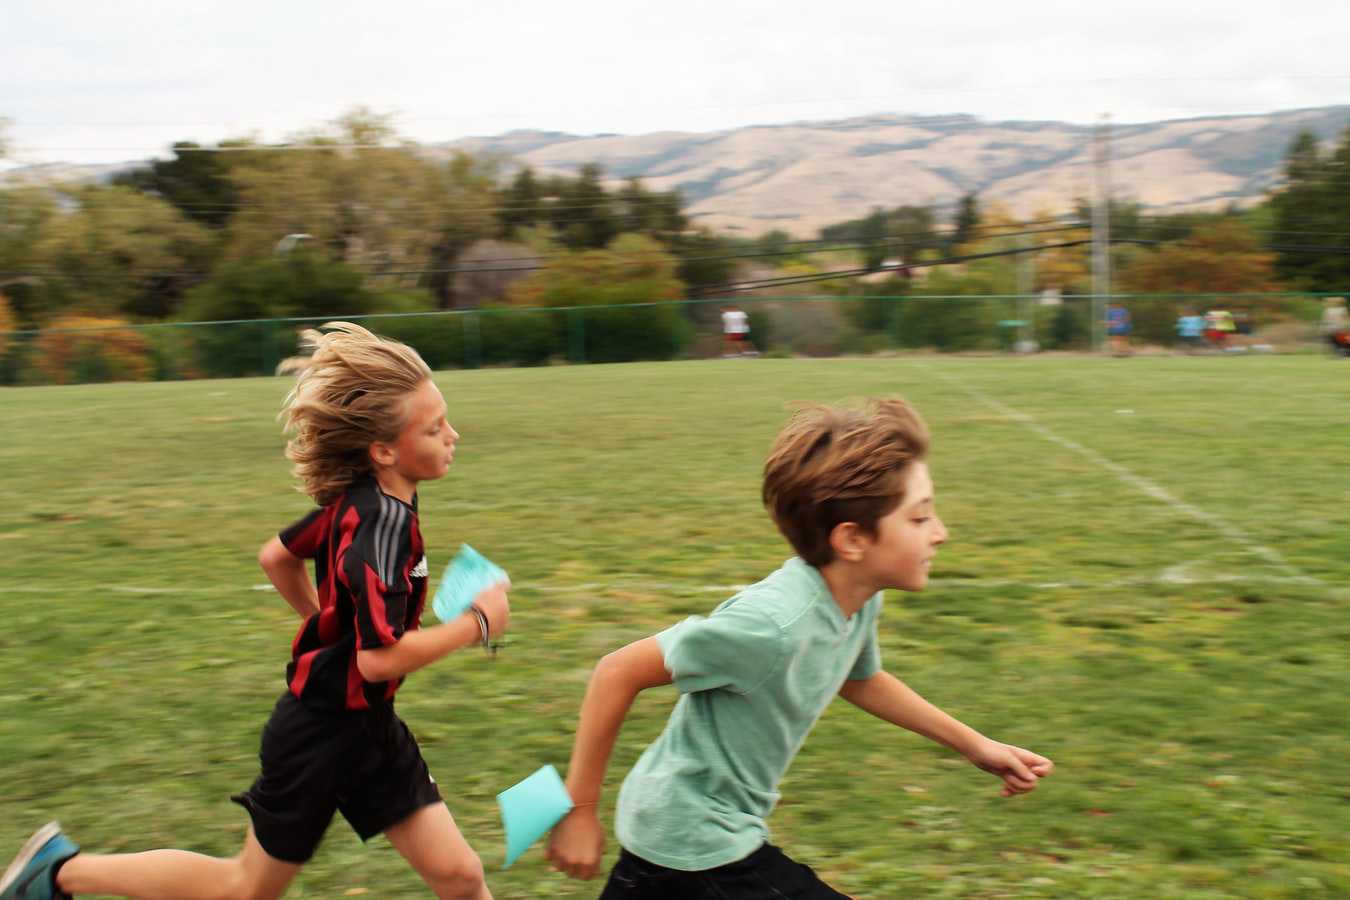 Kids Running on the Field | Kids Car Donations